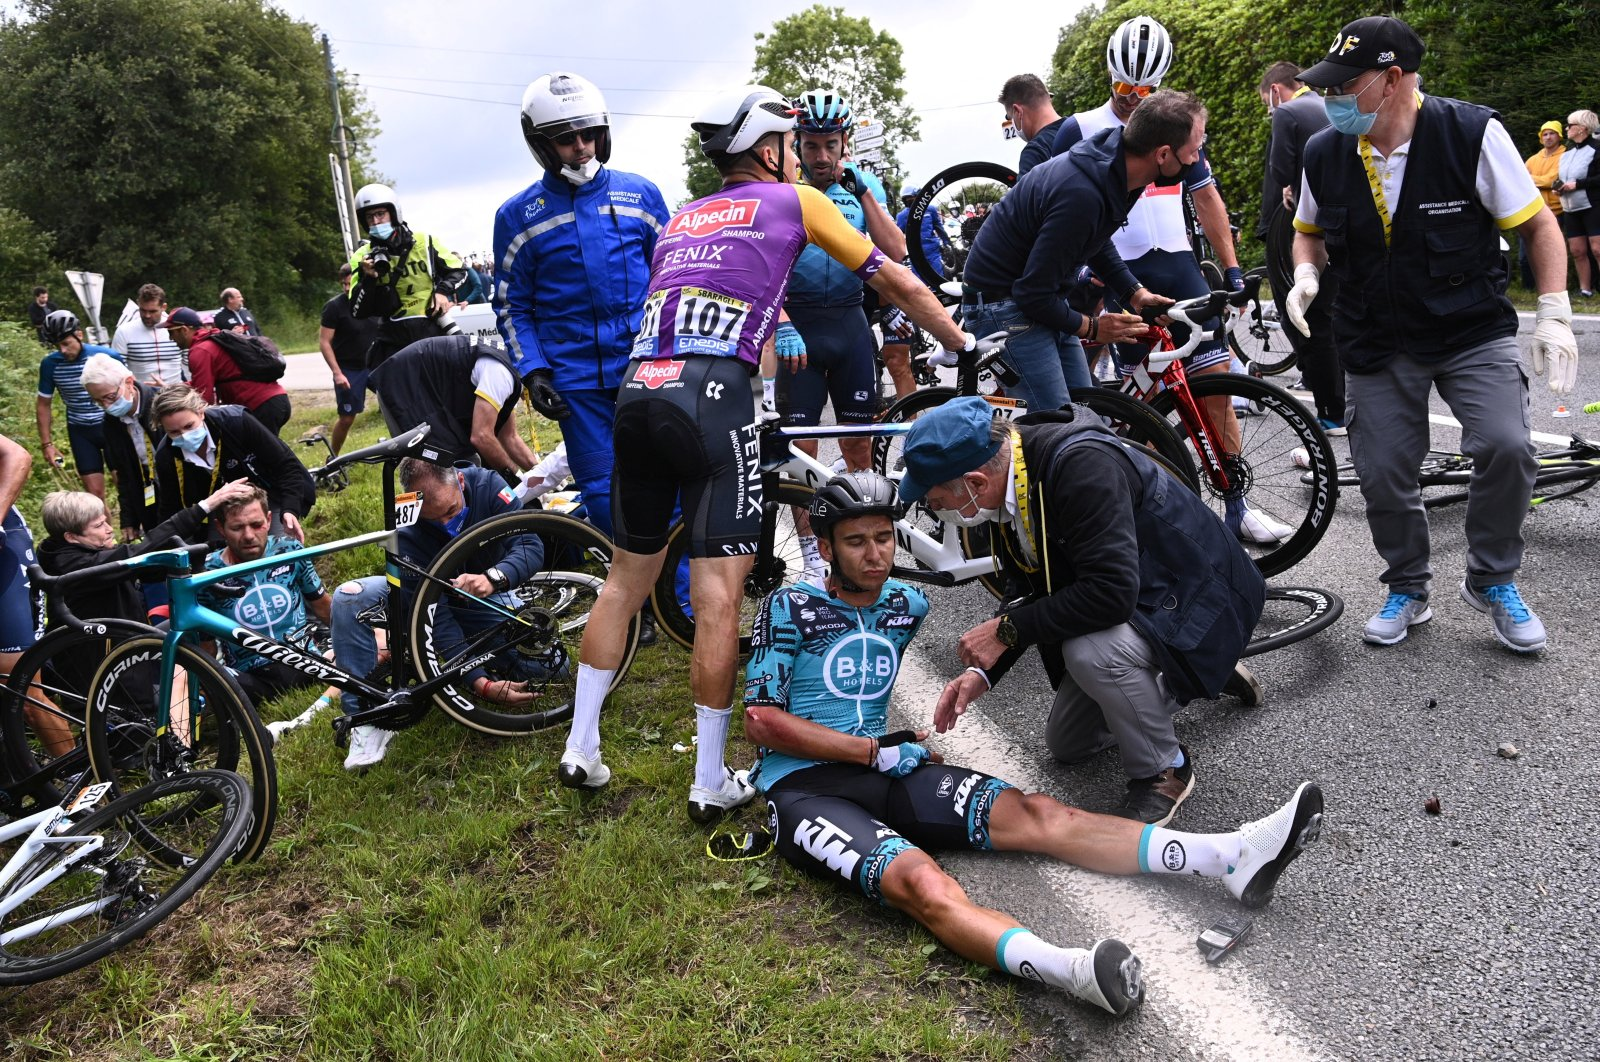 Cyclist Cyril Lemoine of France receives medical attention after crashing during the first stage of the Tour de France that stretches over 197.8 kilometers (122.9 miles) with a start in Brest and finish in Landerneau, France, June 26, 2021.